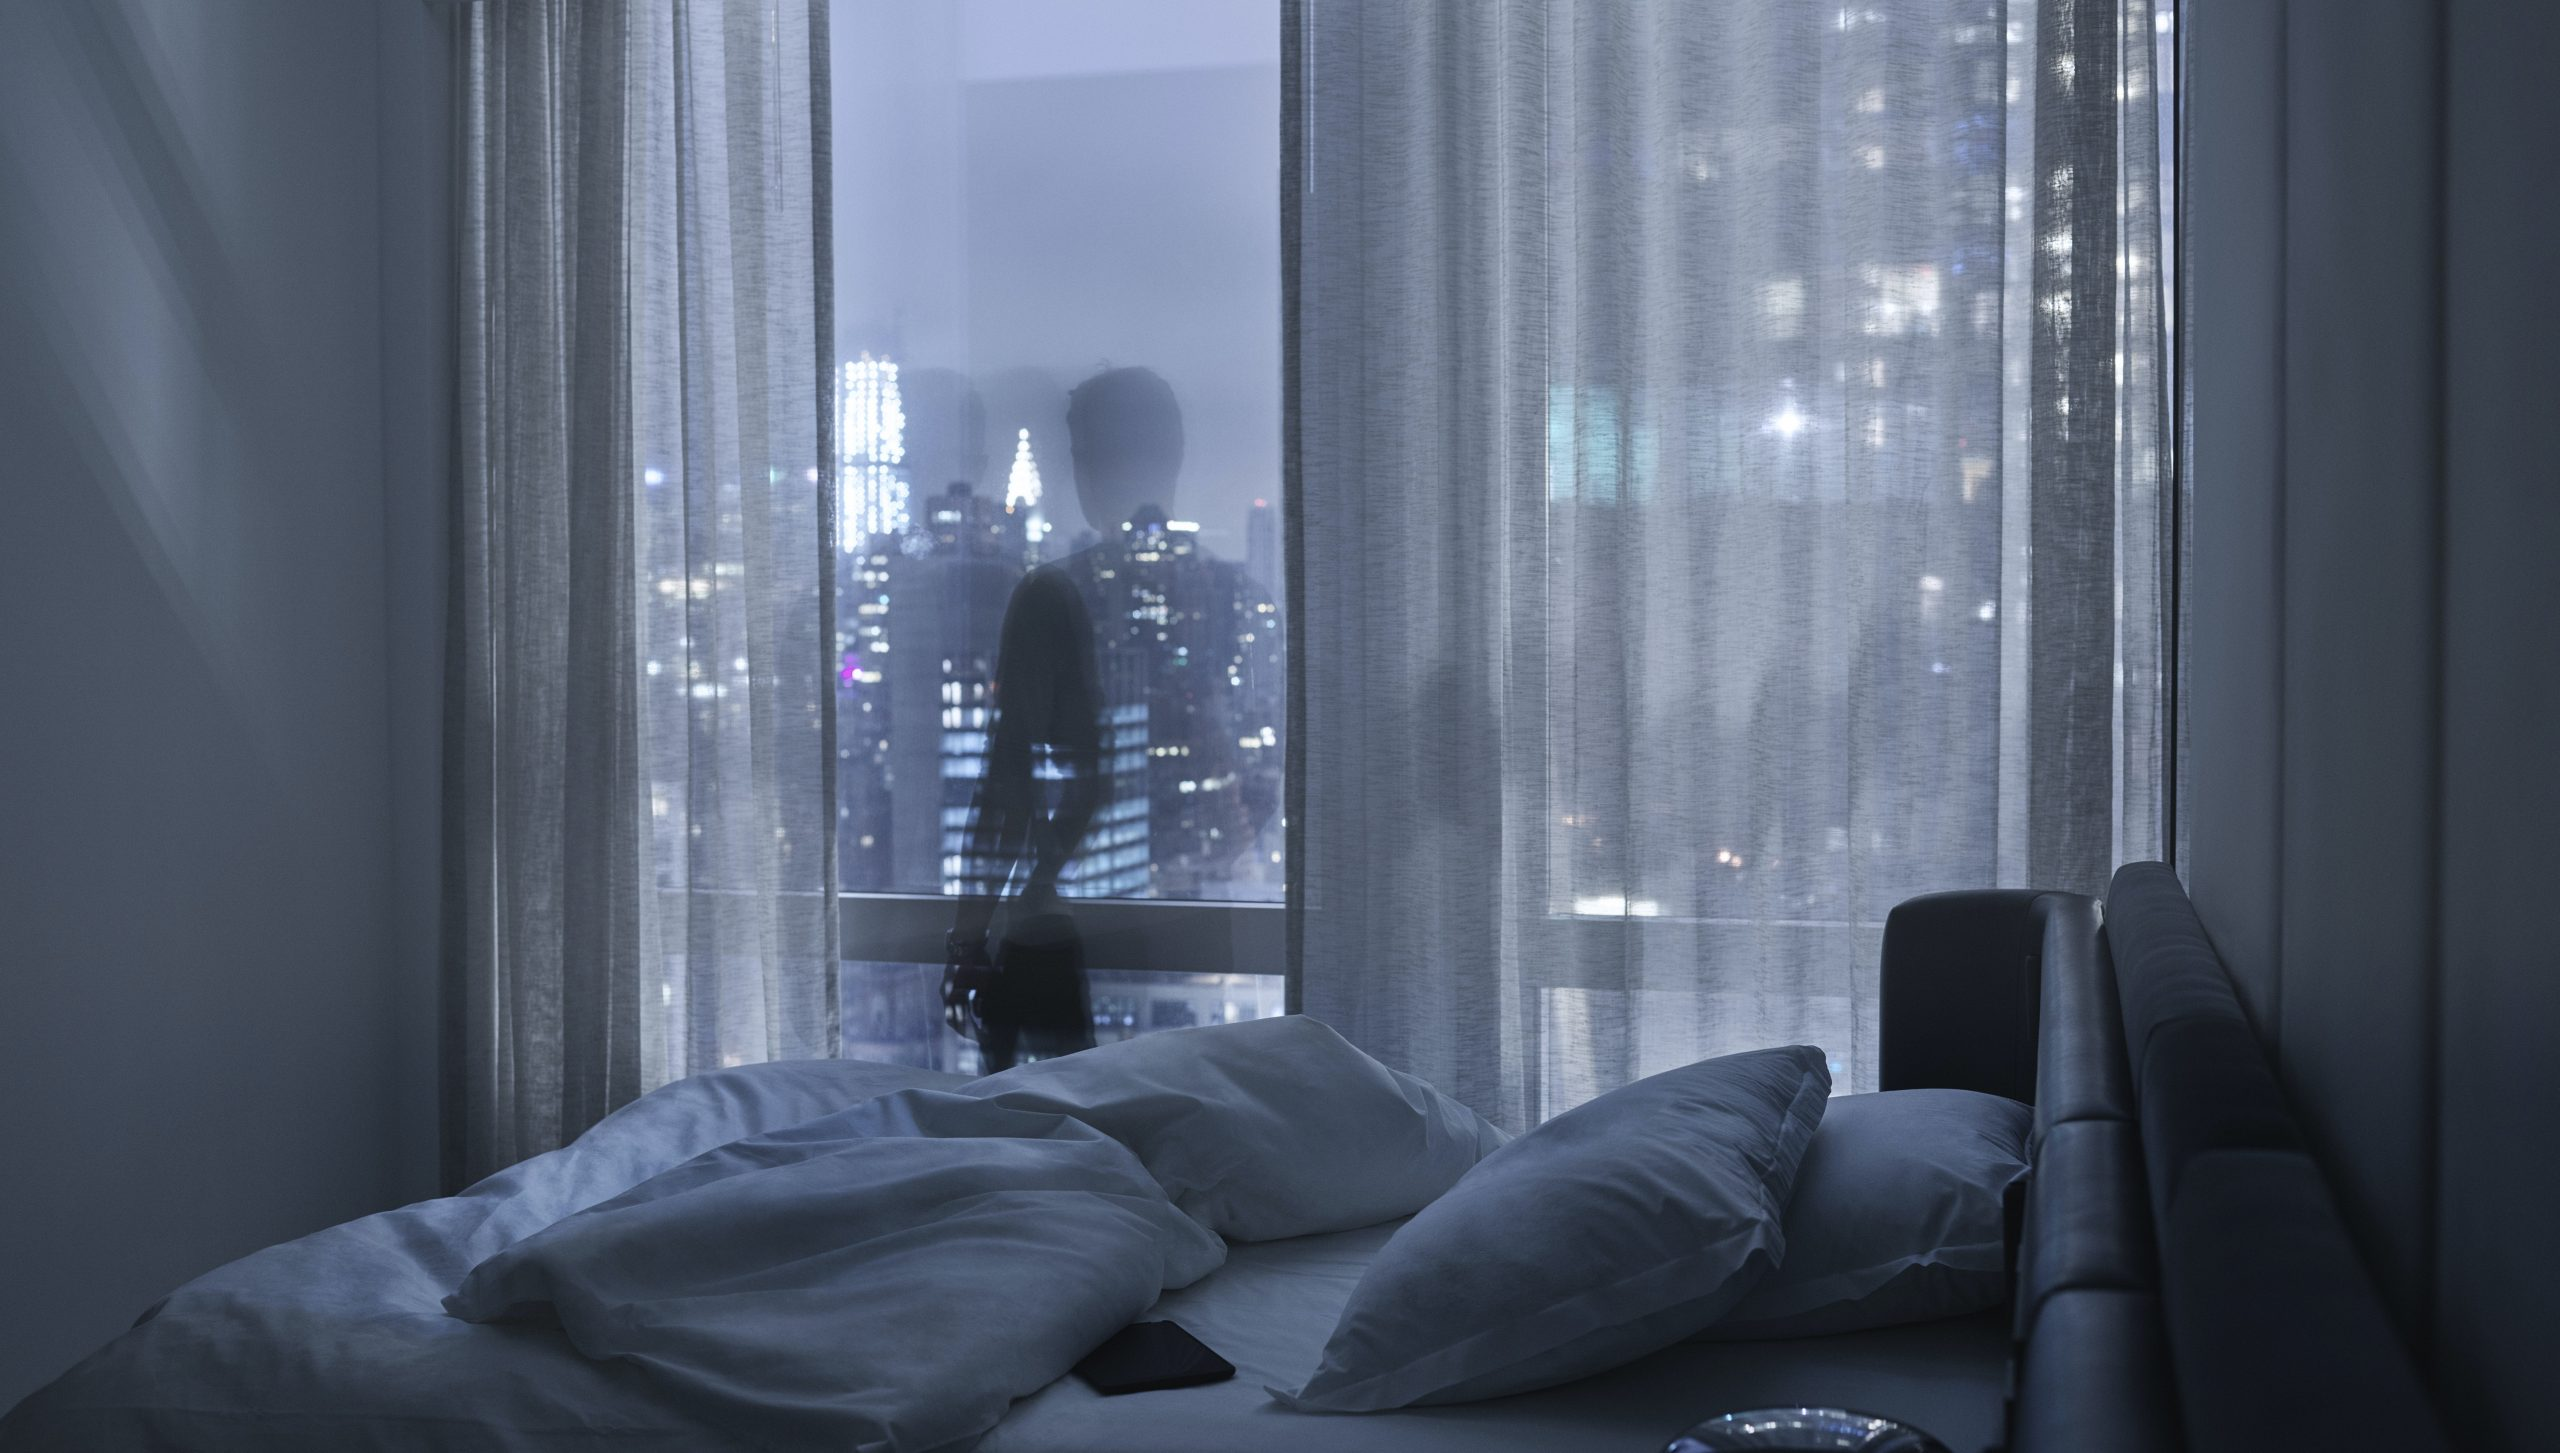 silhouette of man in front of window in guest room at night with city skyline lights in distance and bed in foreground